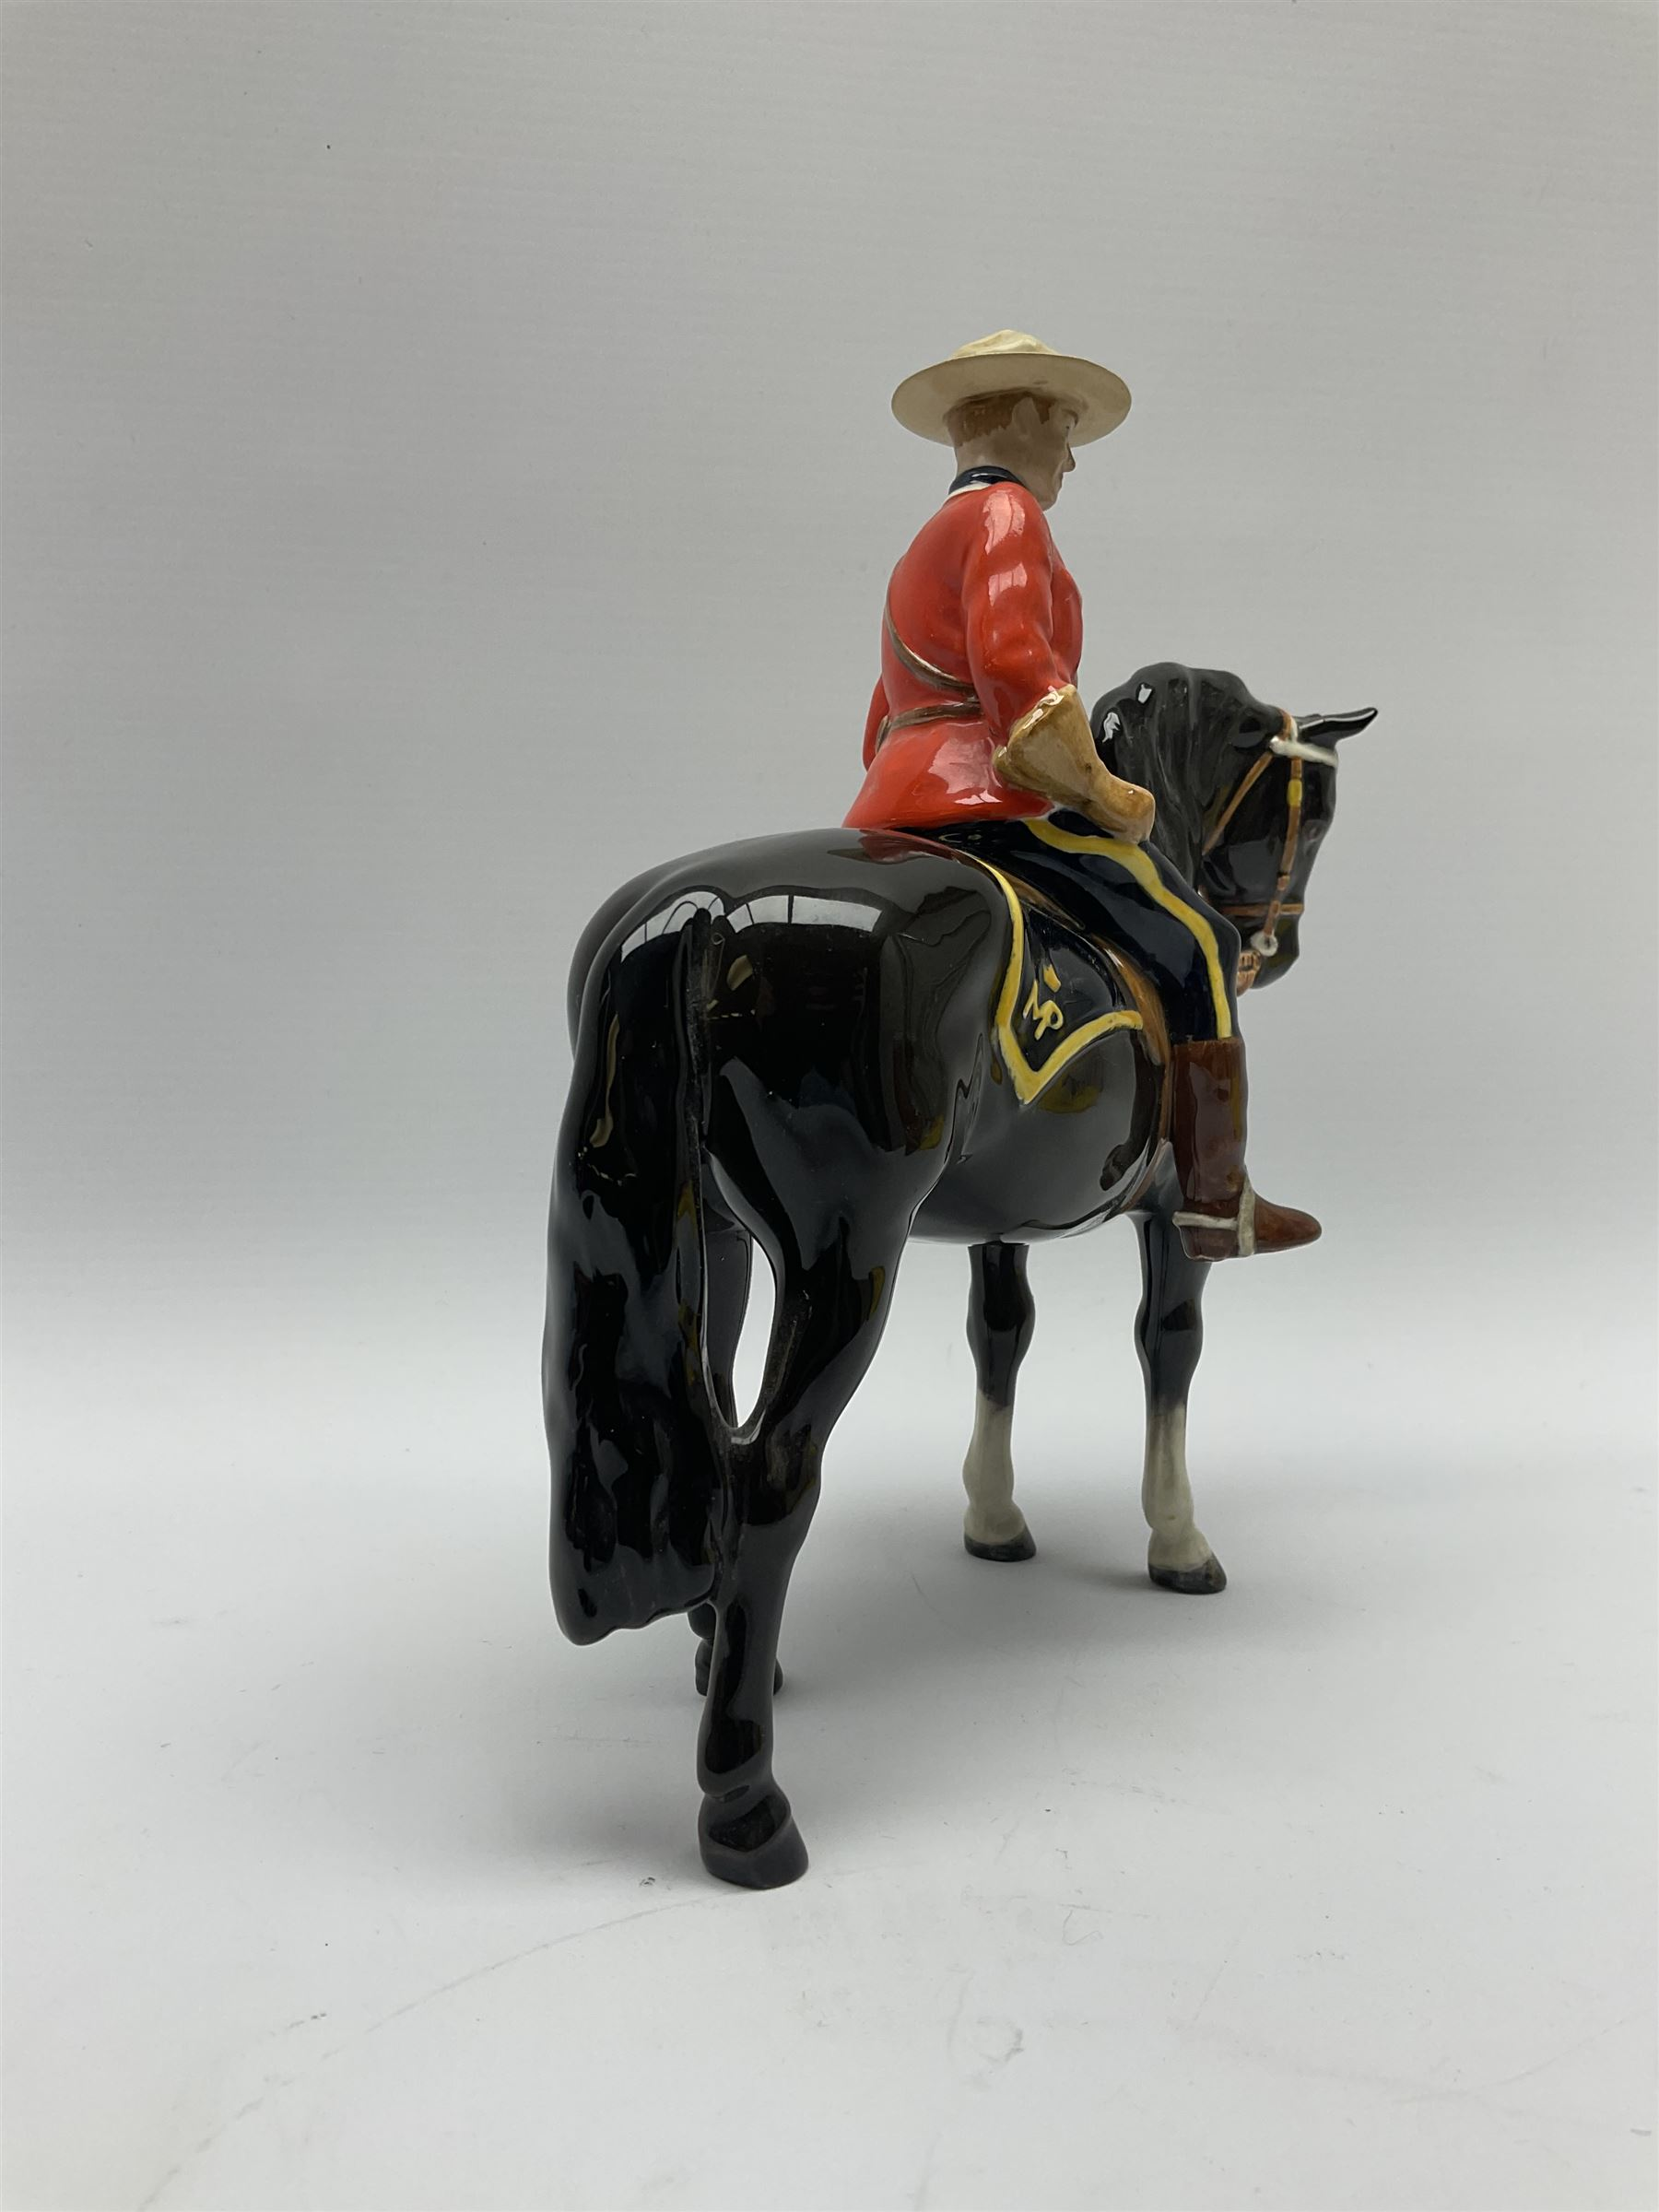 A model of a Canadian Mountie on horseback - Image 5 of 6